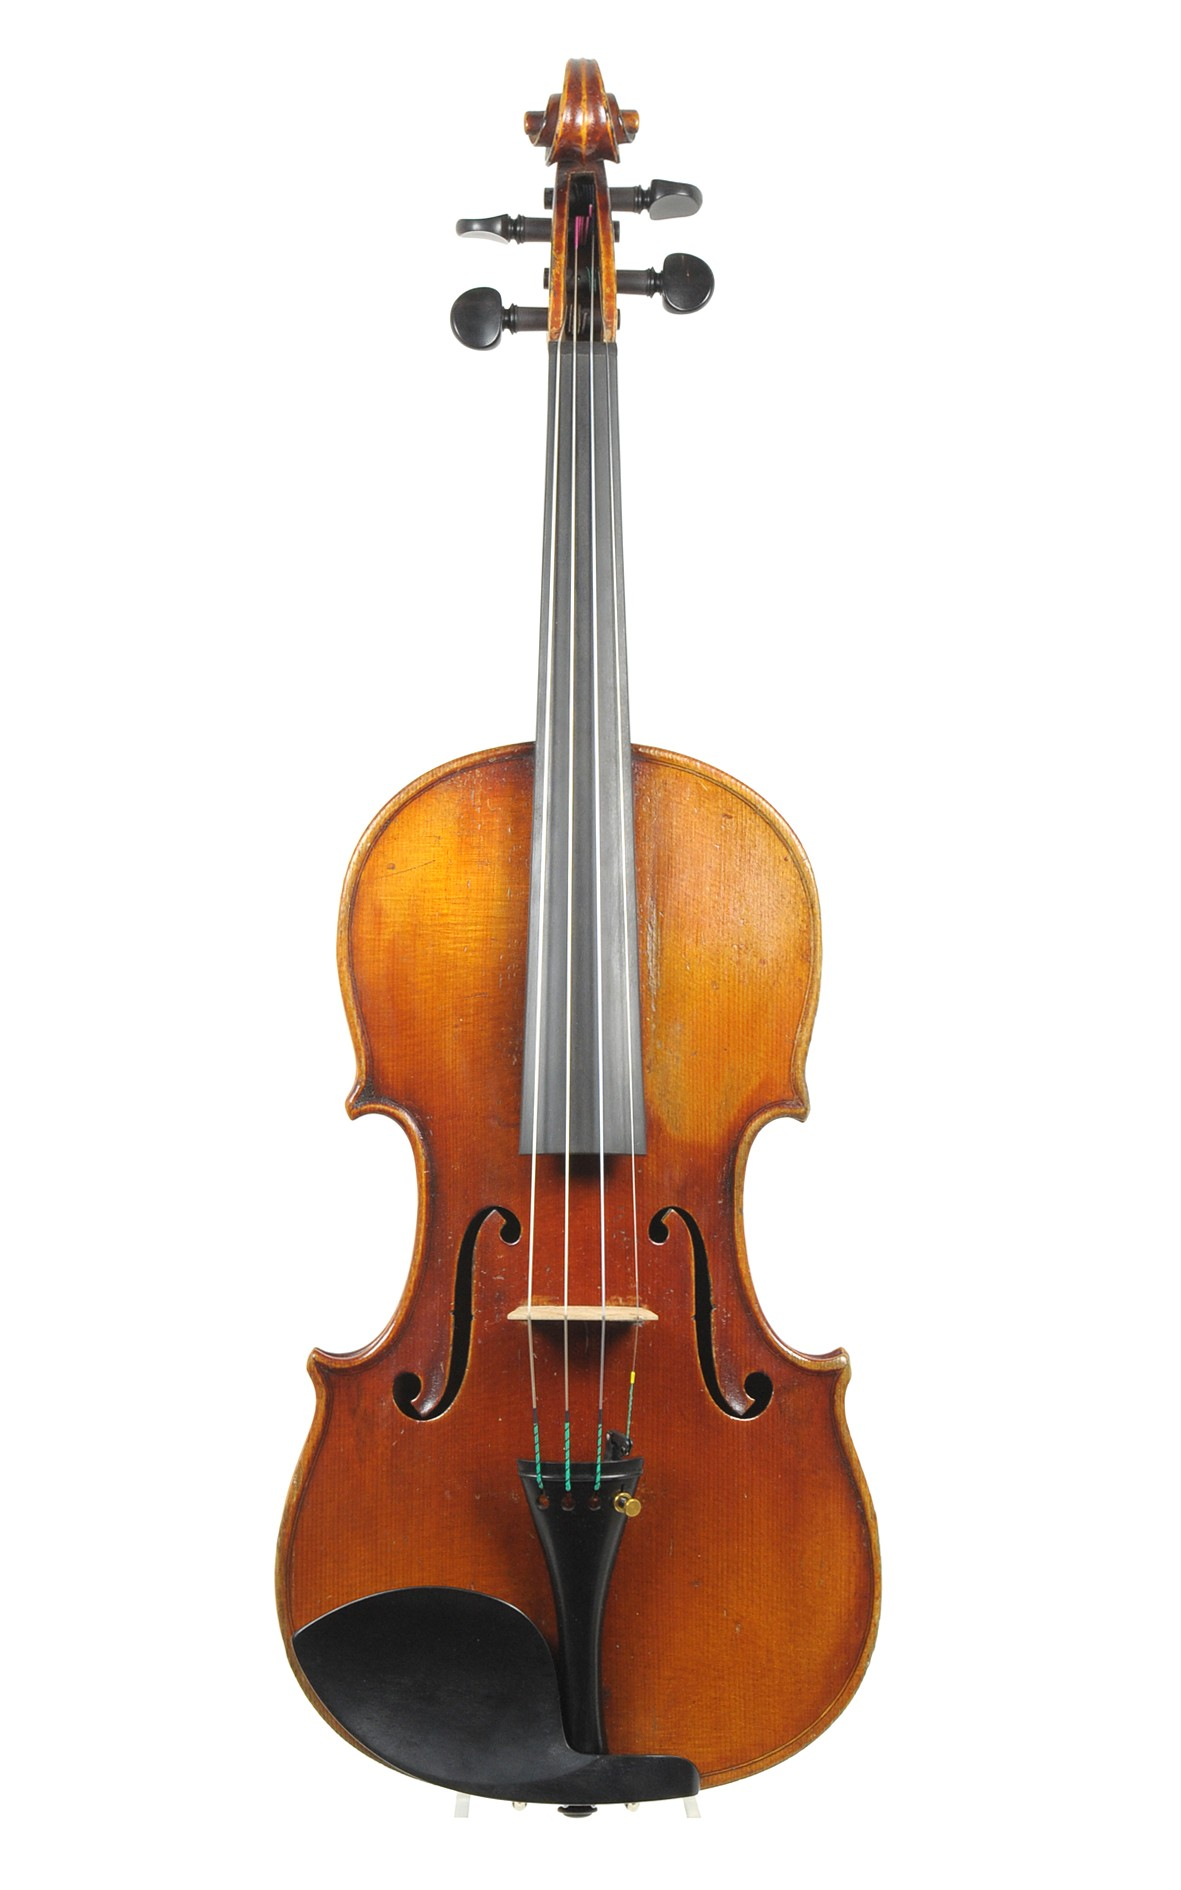 Ludwig Neuner, German violin from Berlin and Mittenwald